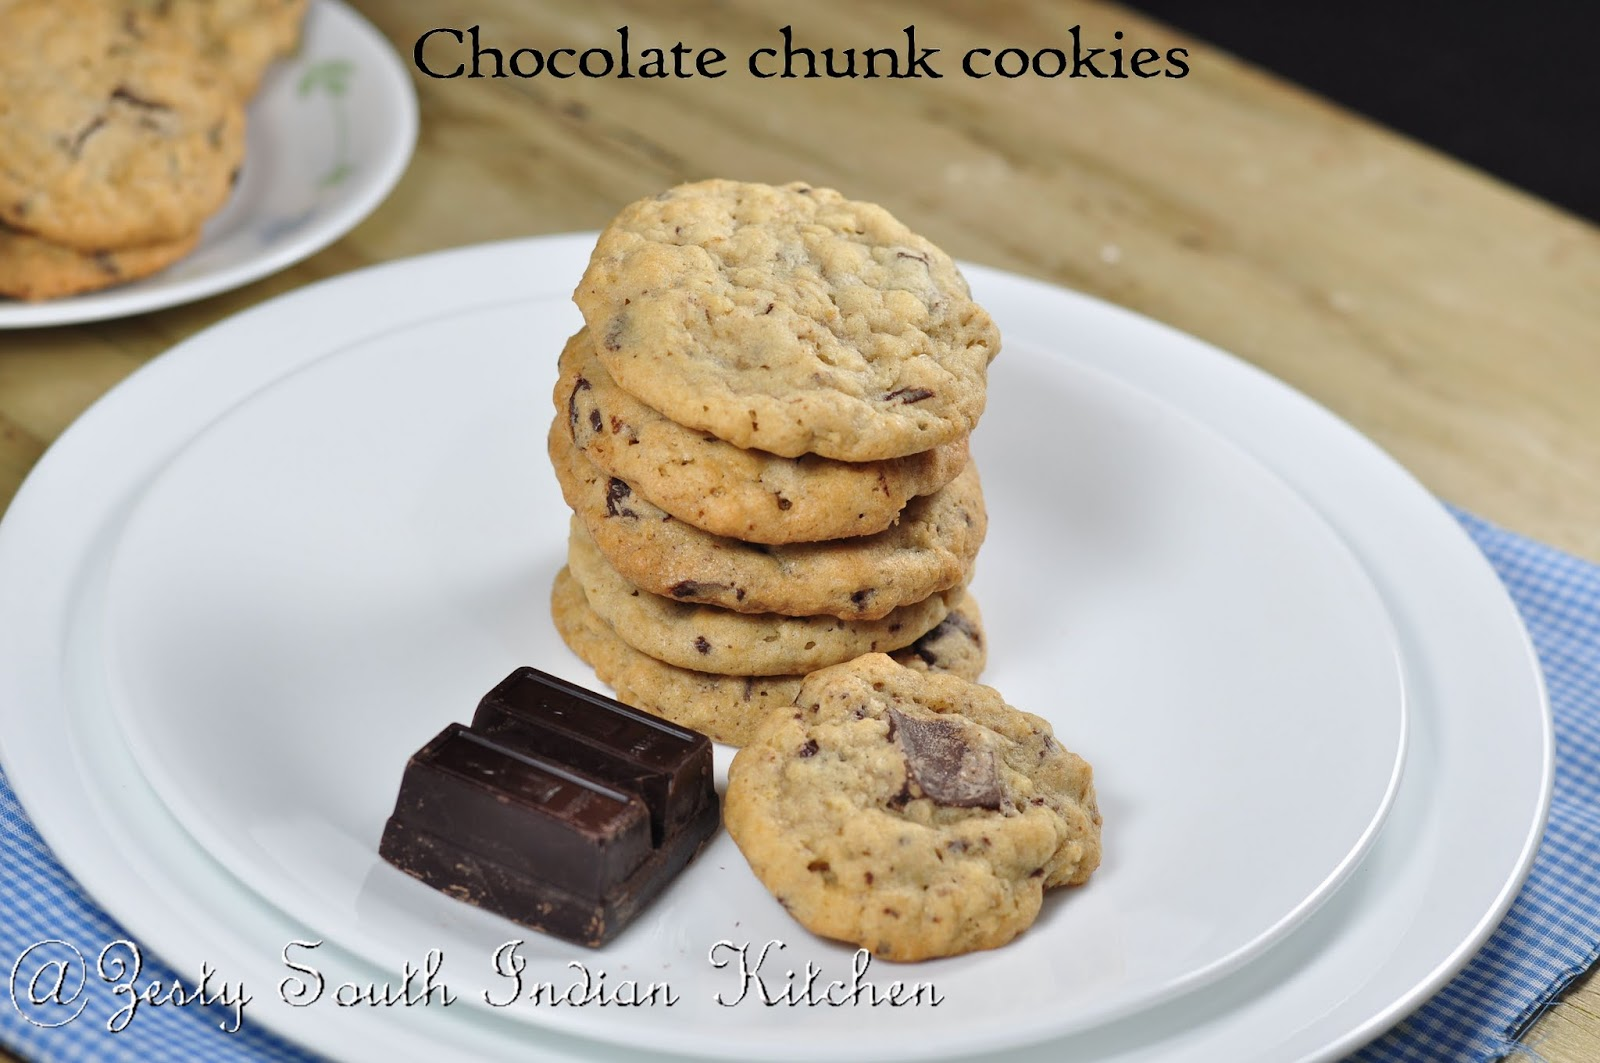 Chocolate Chunk Cookies - Zesty South Indian Kitchen